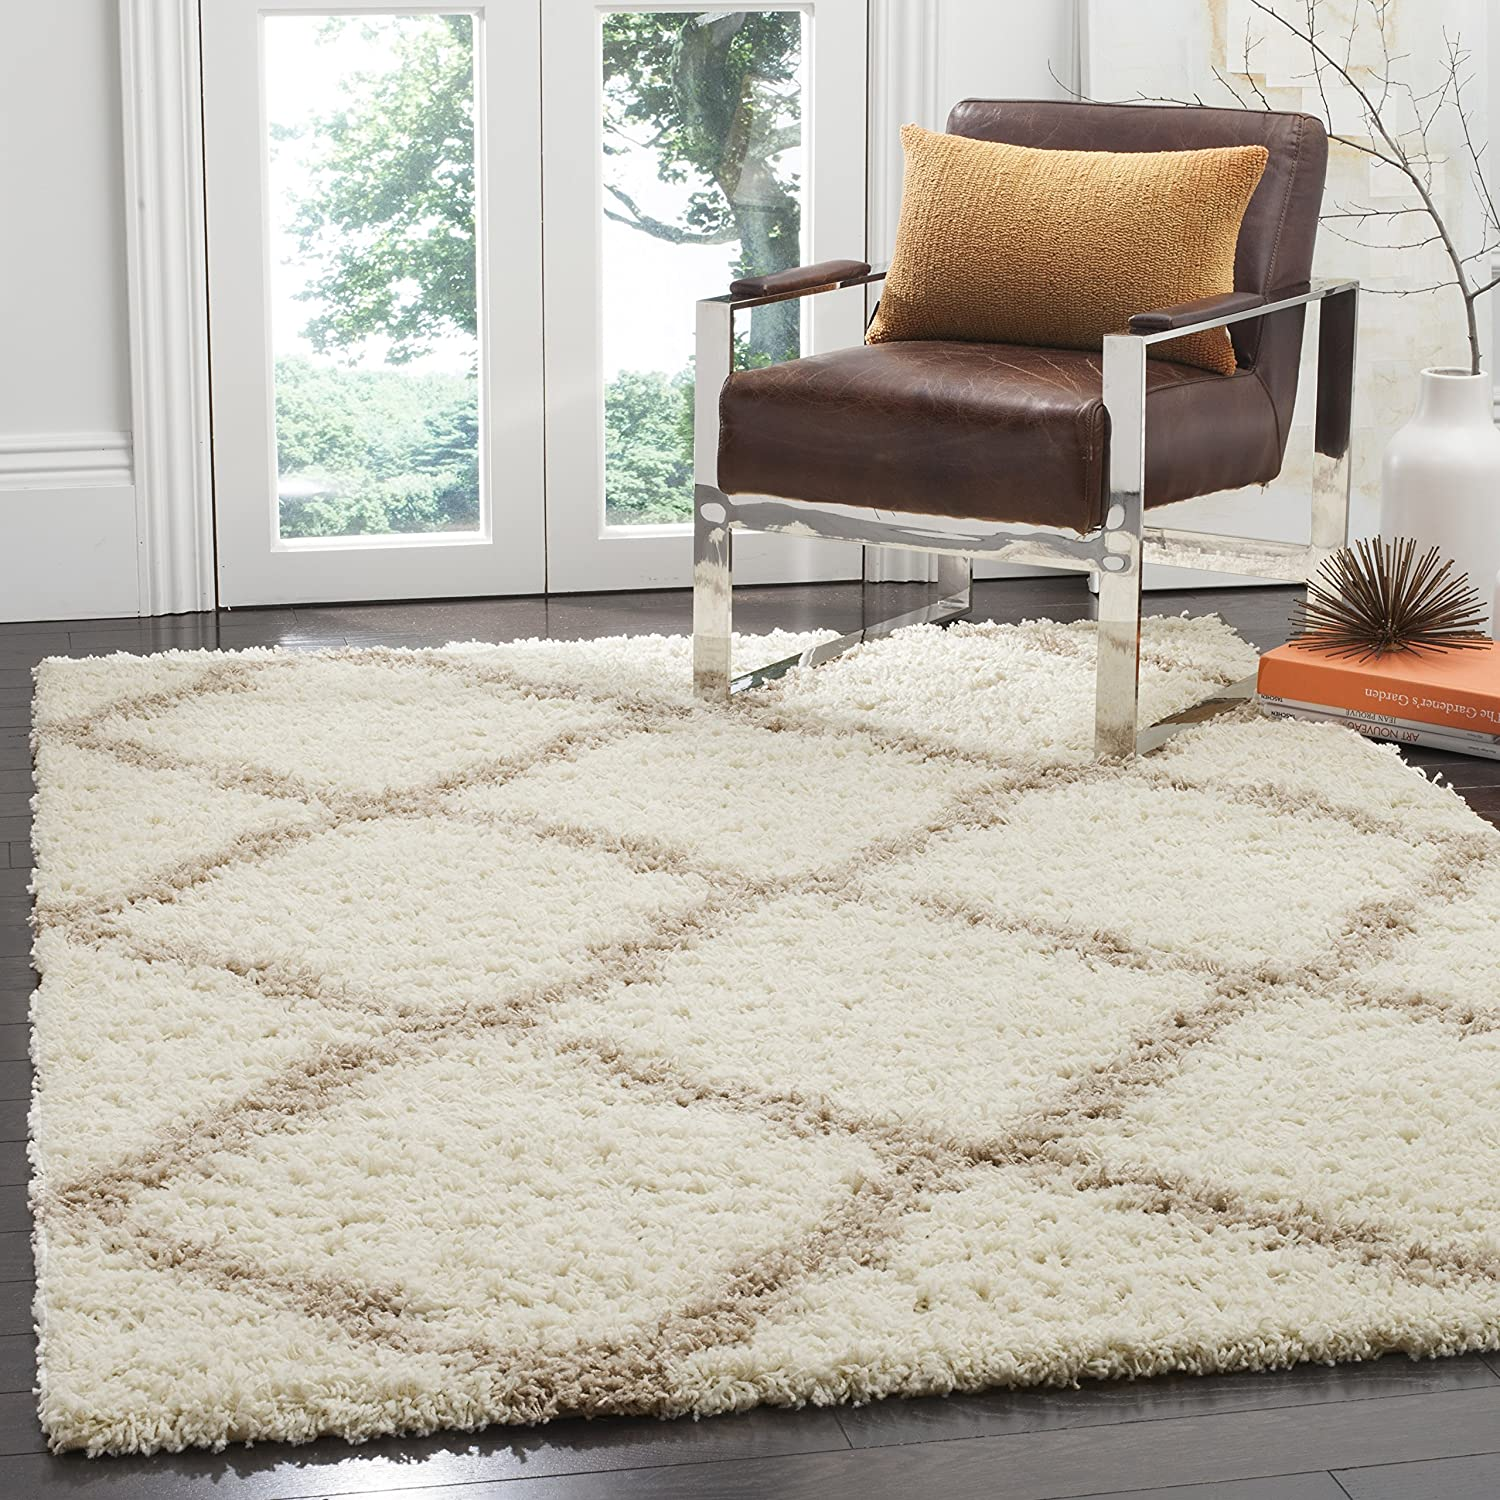 customize oz tuftex rugs super colors in indoor product shag carpet collage multiple size your rug area thick swag luxury collection